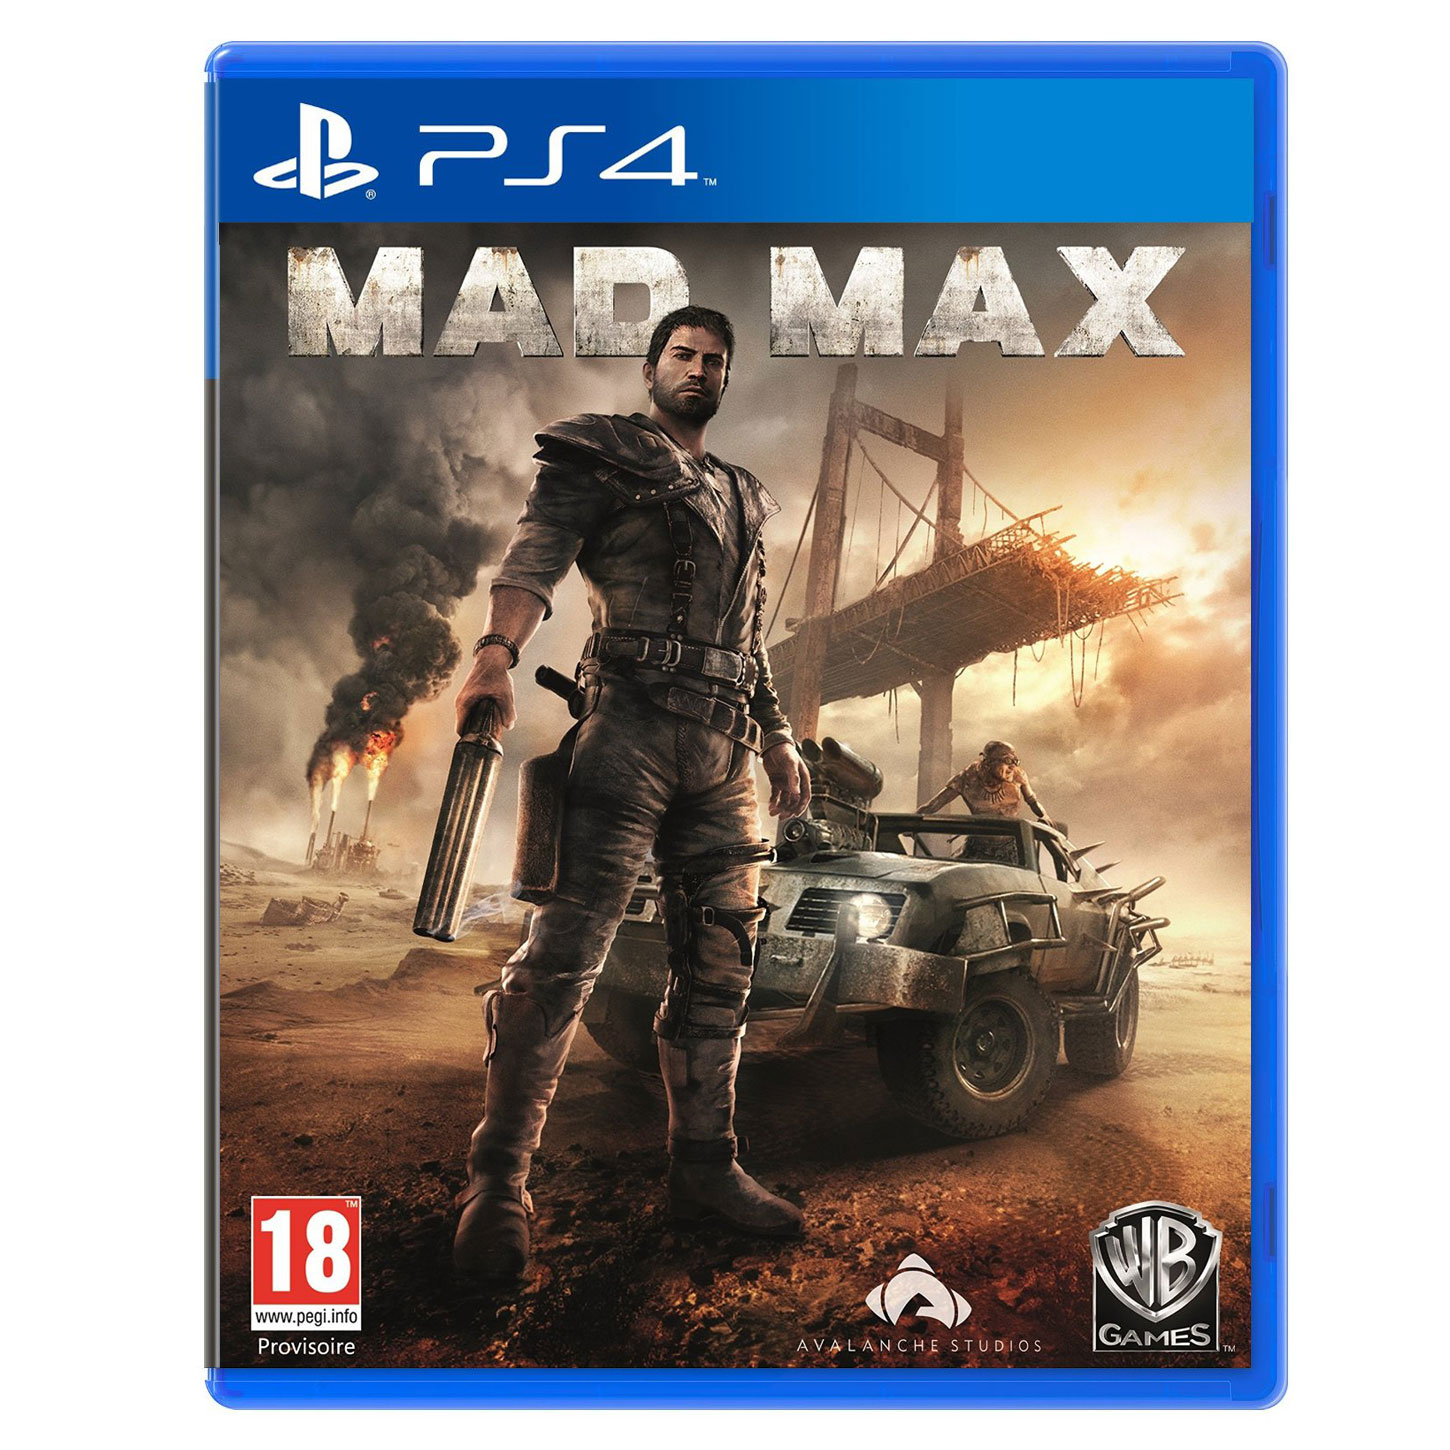 mad max ps4 jeux ps4 warner bros games sur ldlc. Black Bedroom Furniture Sets. Home Design Ideas